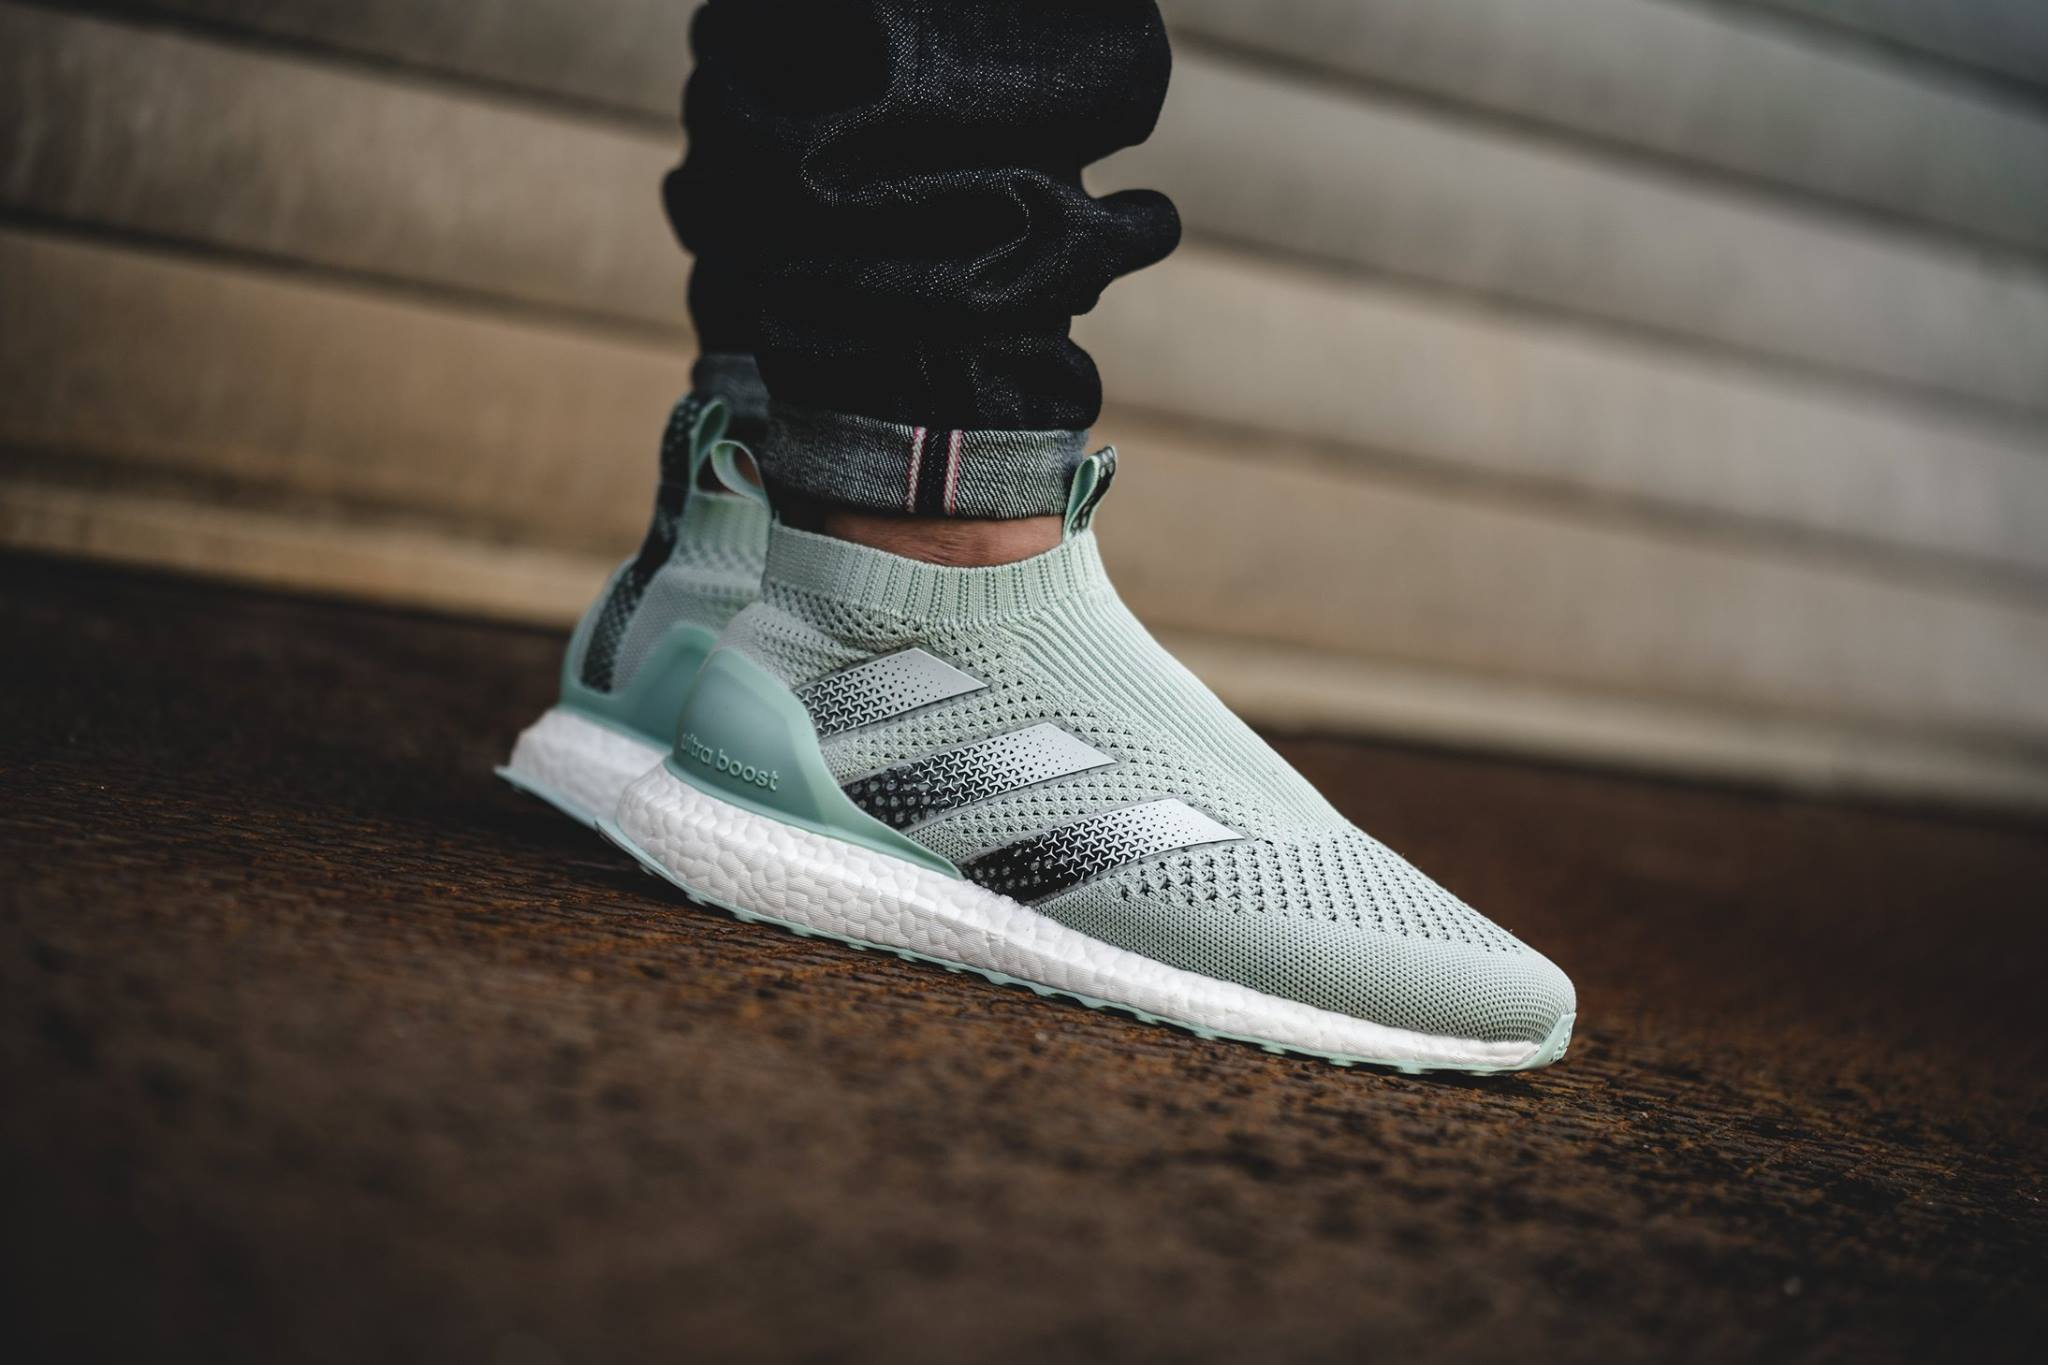 giay the thao adidas 2017 - adidas x Kith Ace 16+ PureControl Ultra Boost - elle man 1